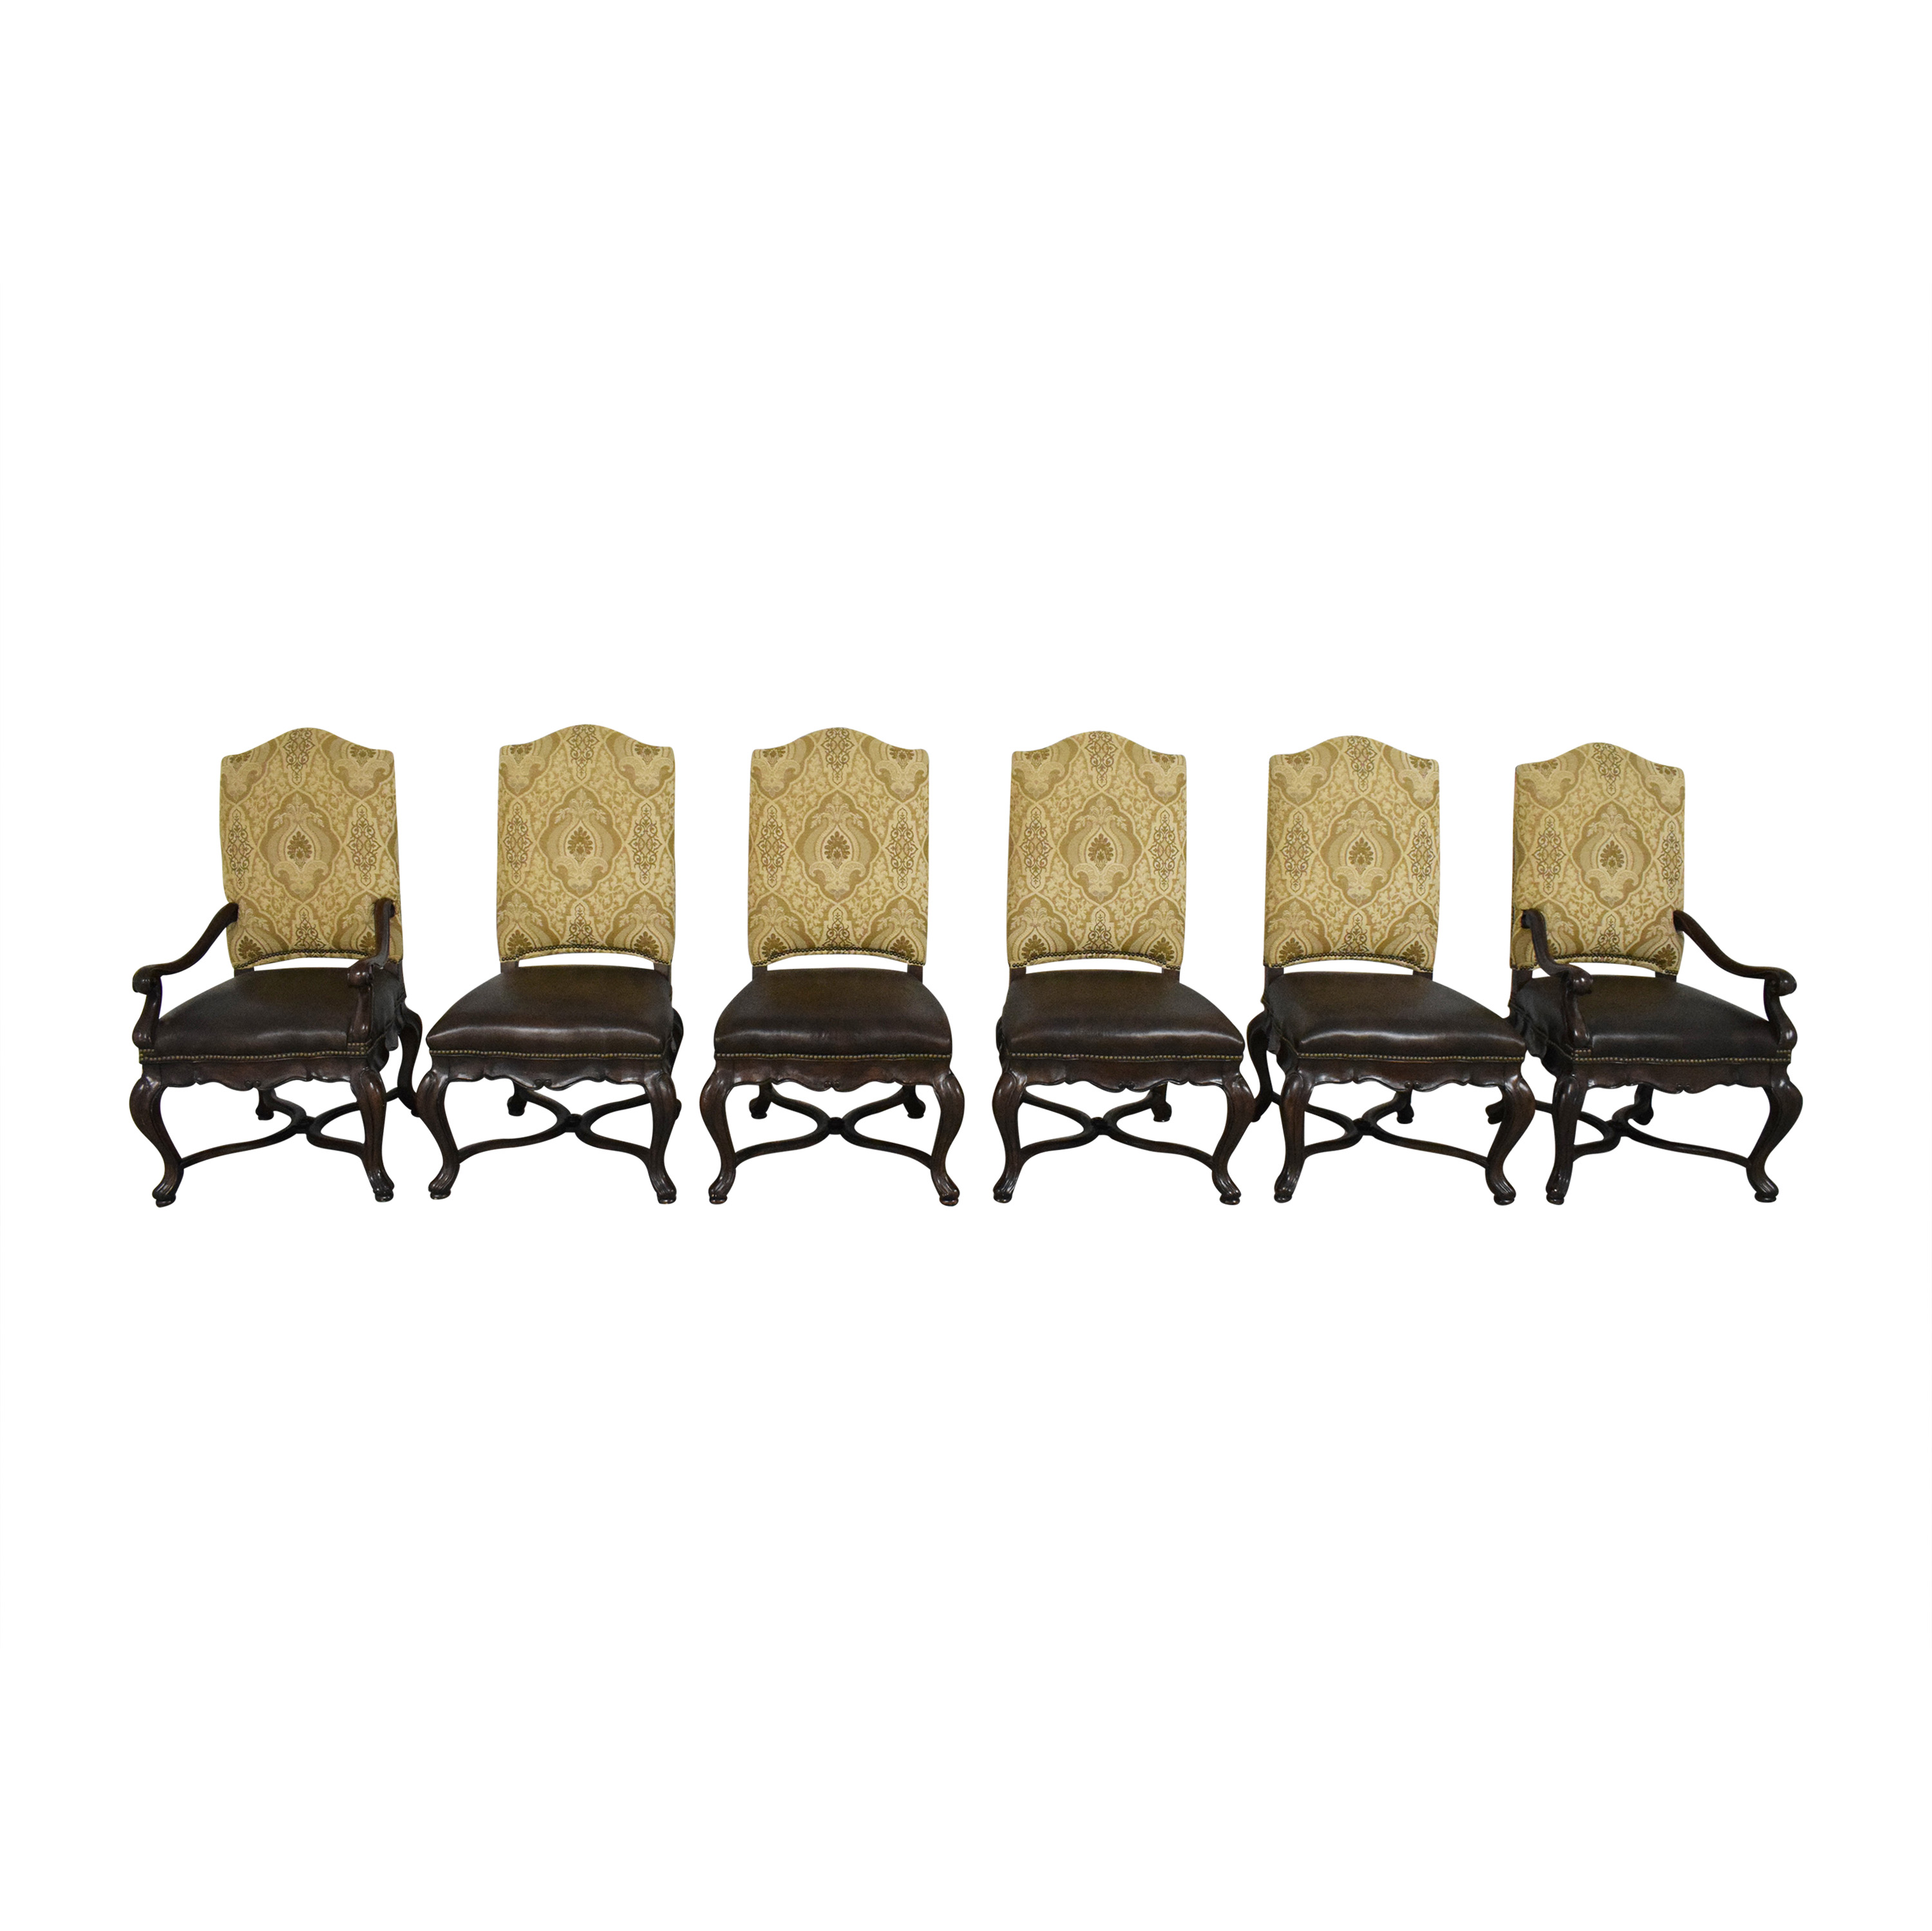 Thomasville Thomasville Hills of Tuscany Dining Chairs Chairs